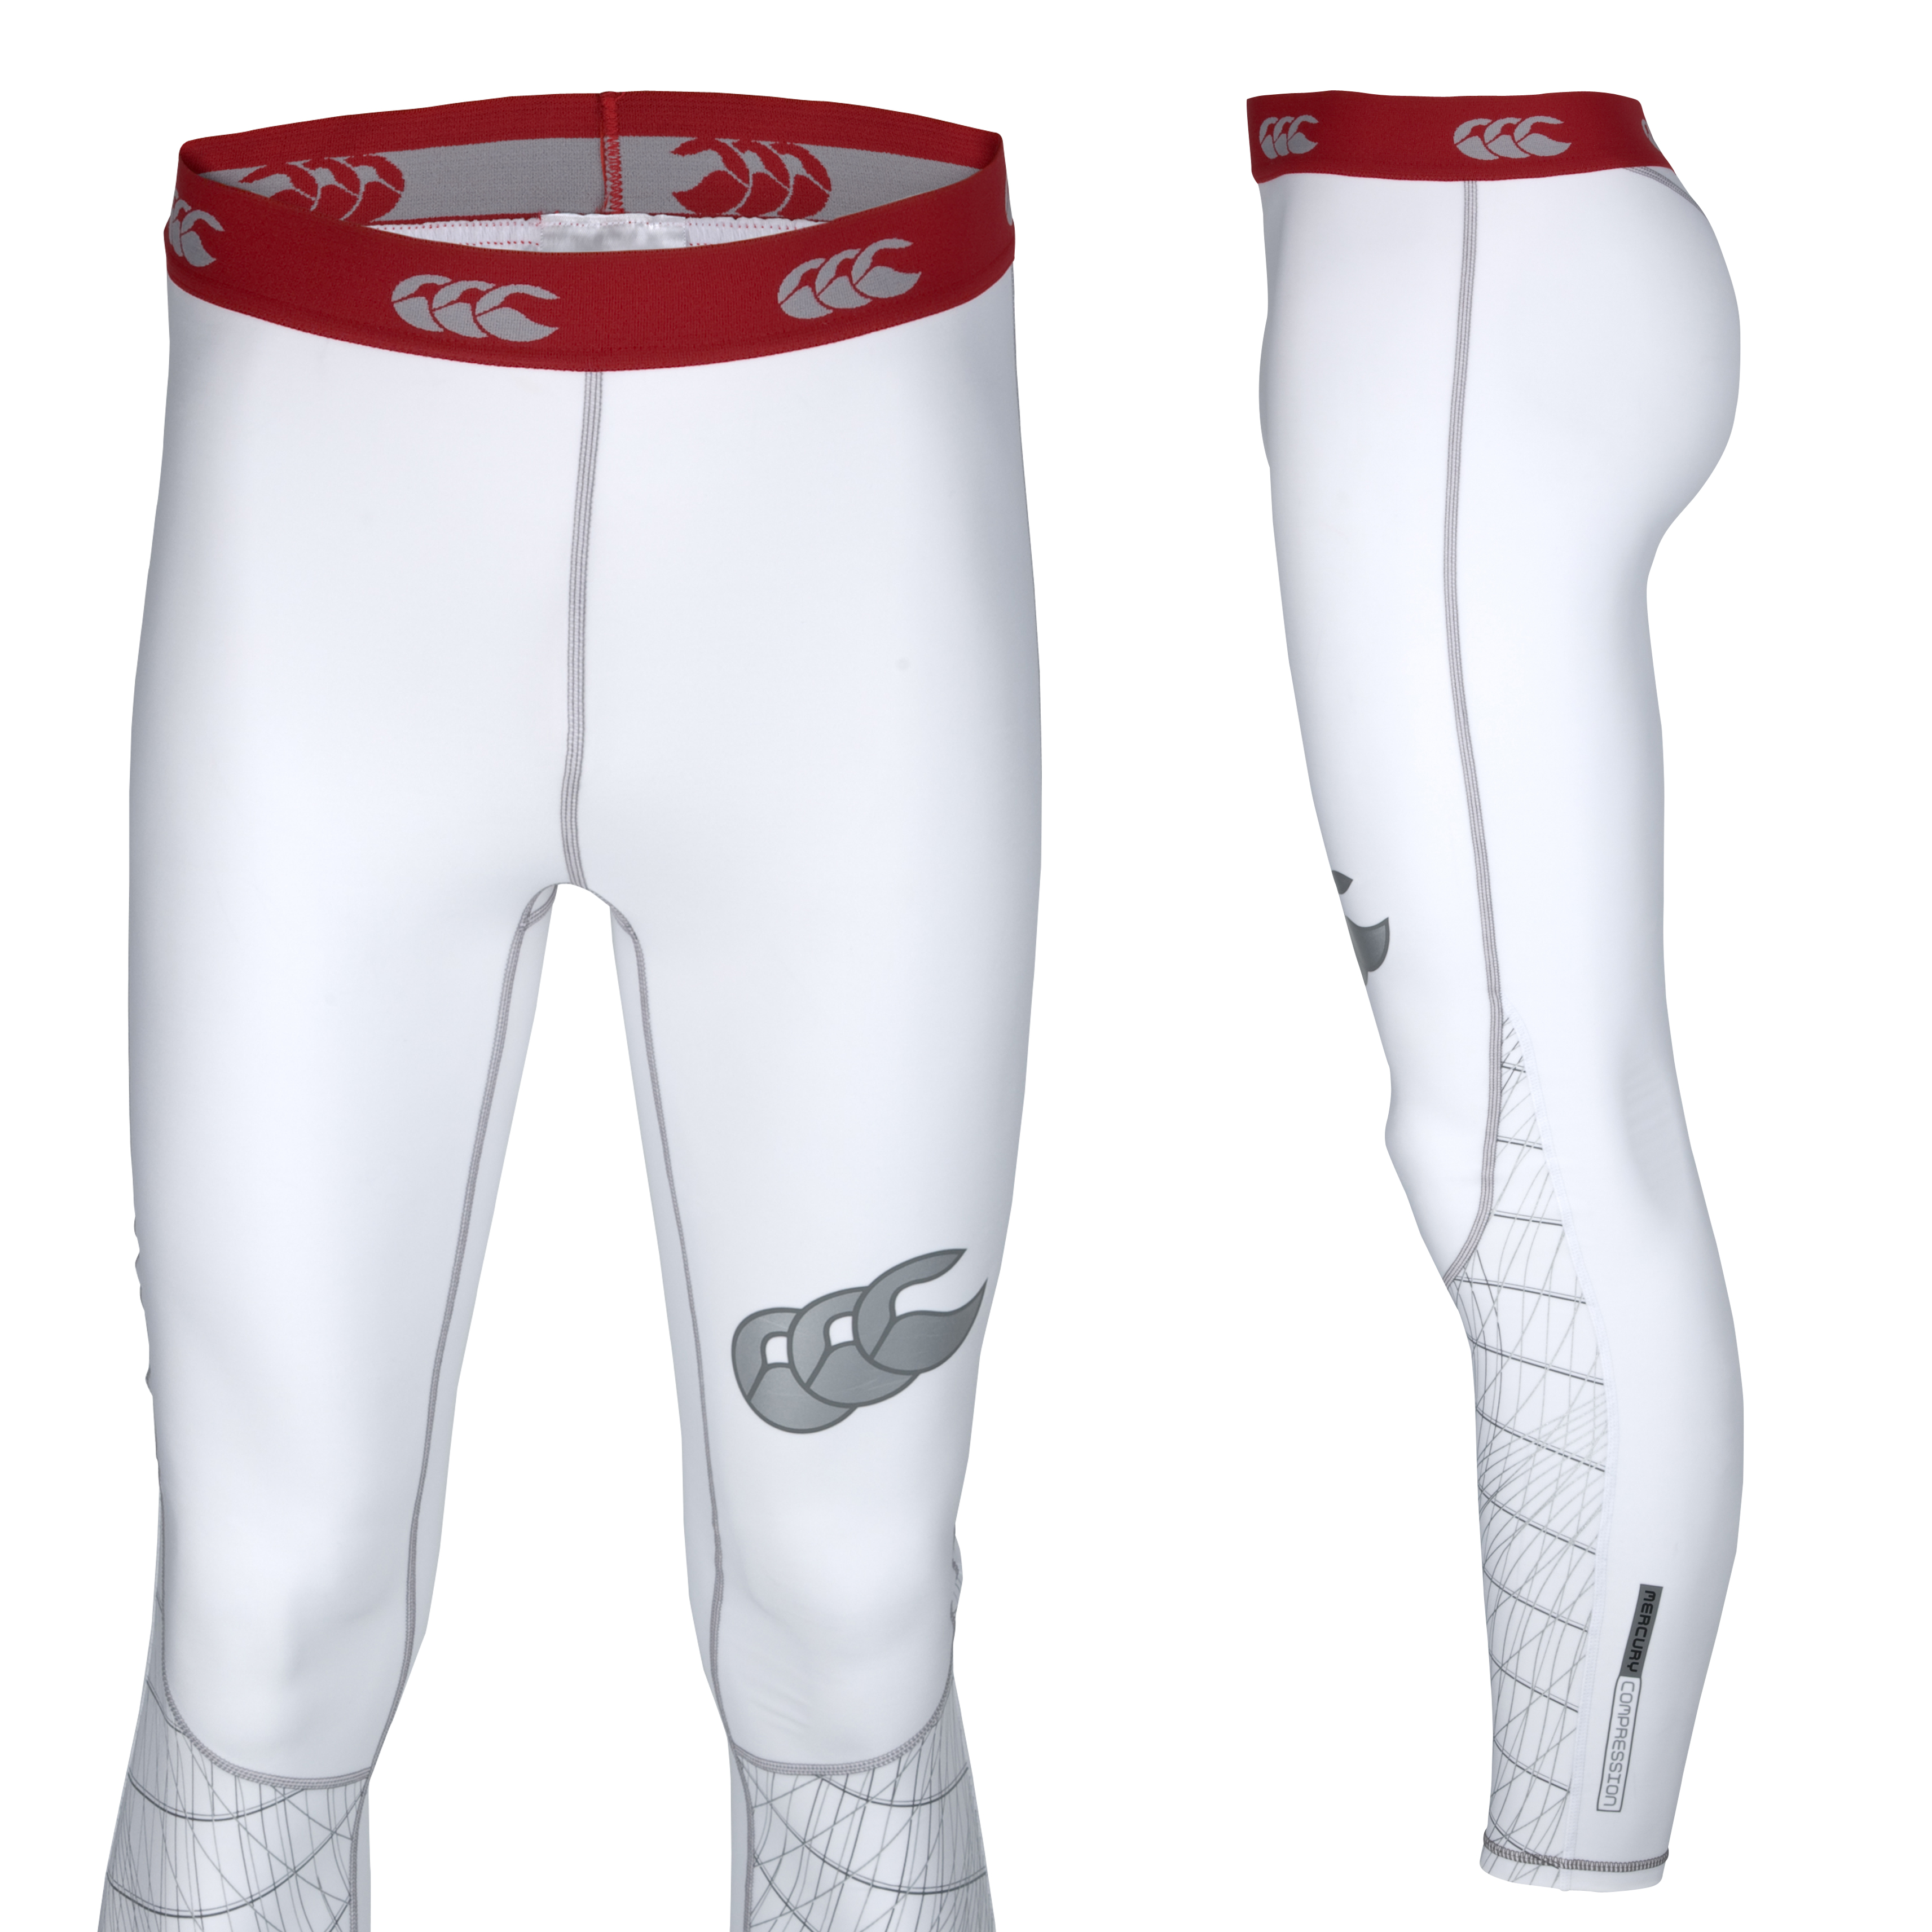 Canterbury Mercury Hybrid Compression Legging - White